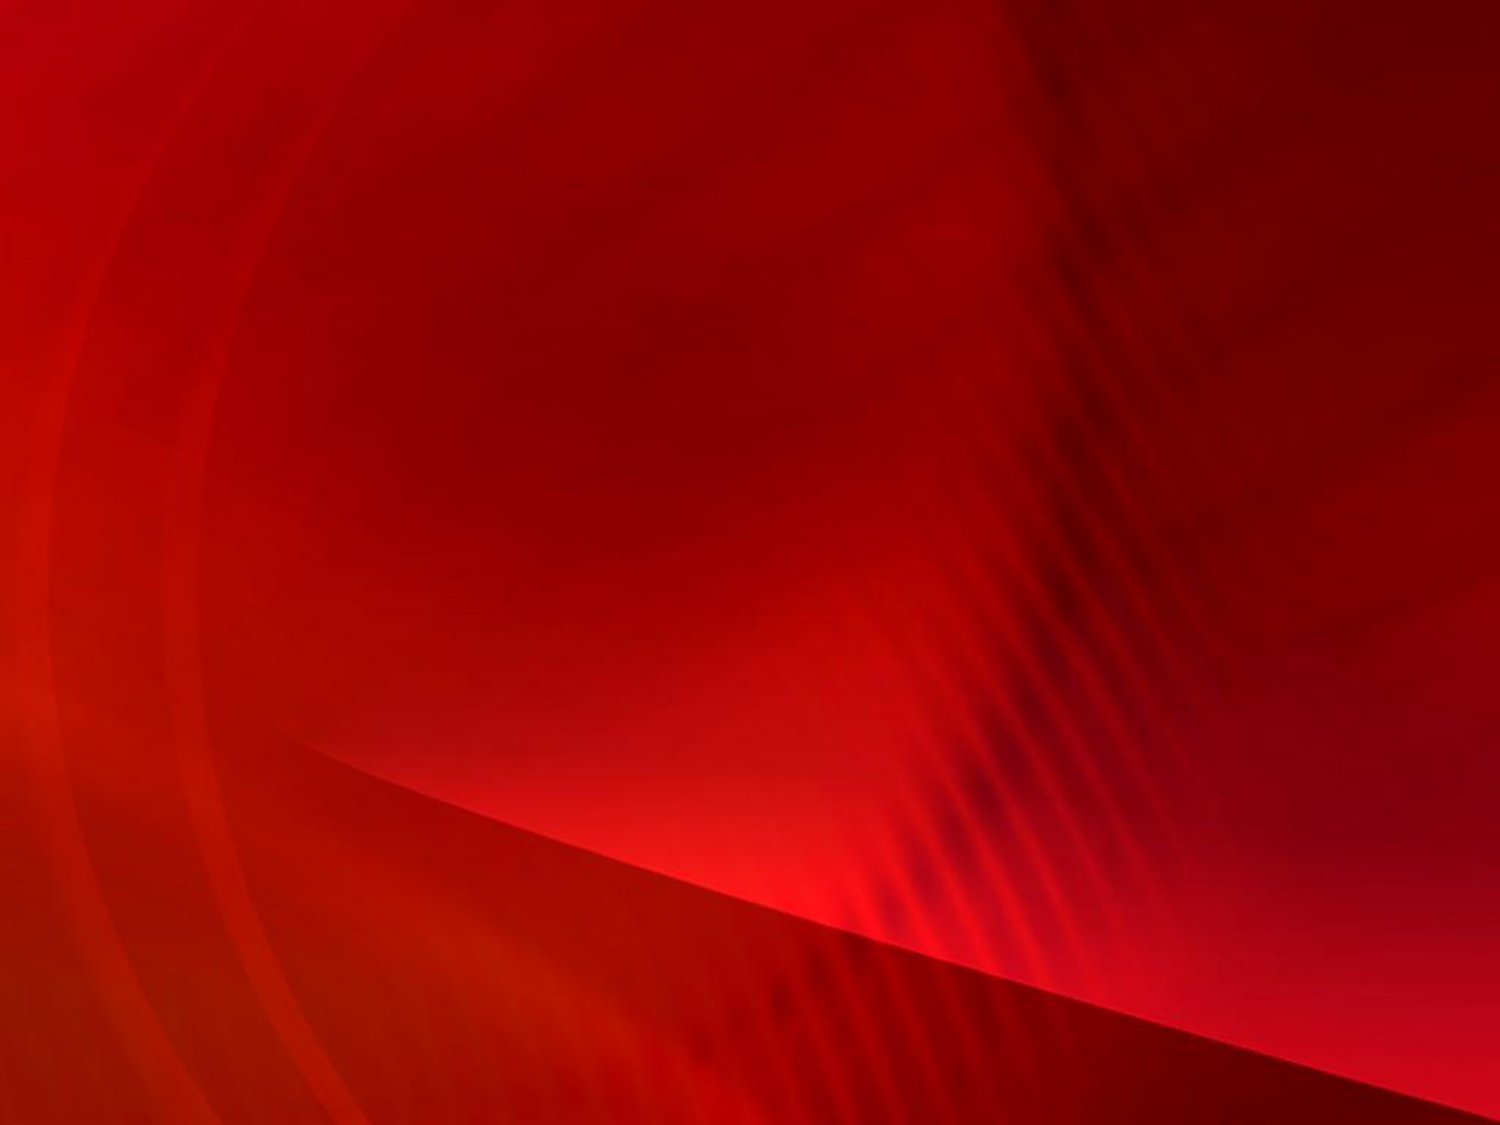 powerpoint slides | free powerpoint template background slide red, Powerpoint templates